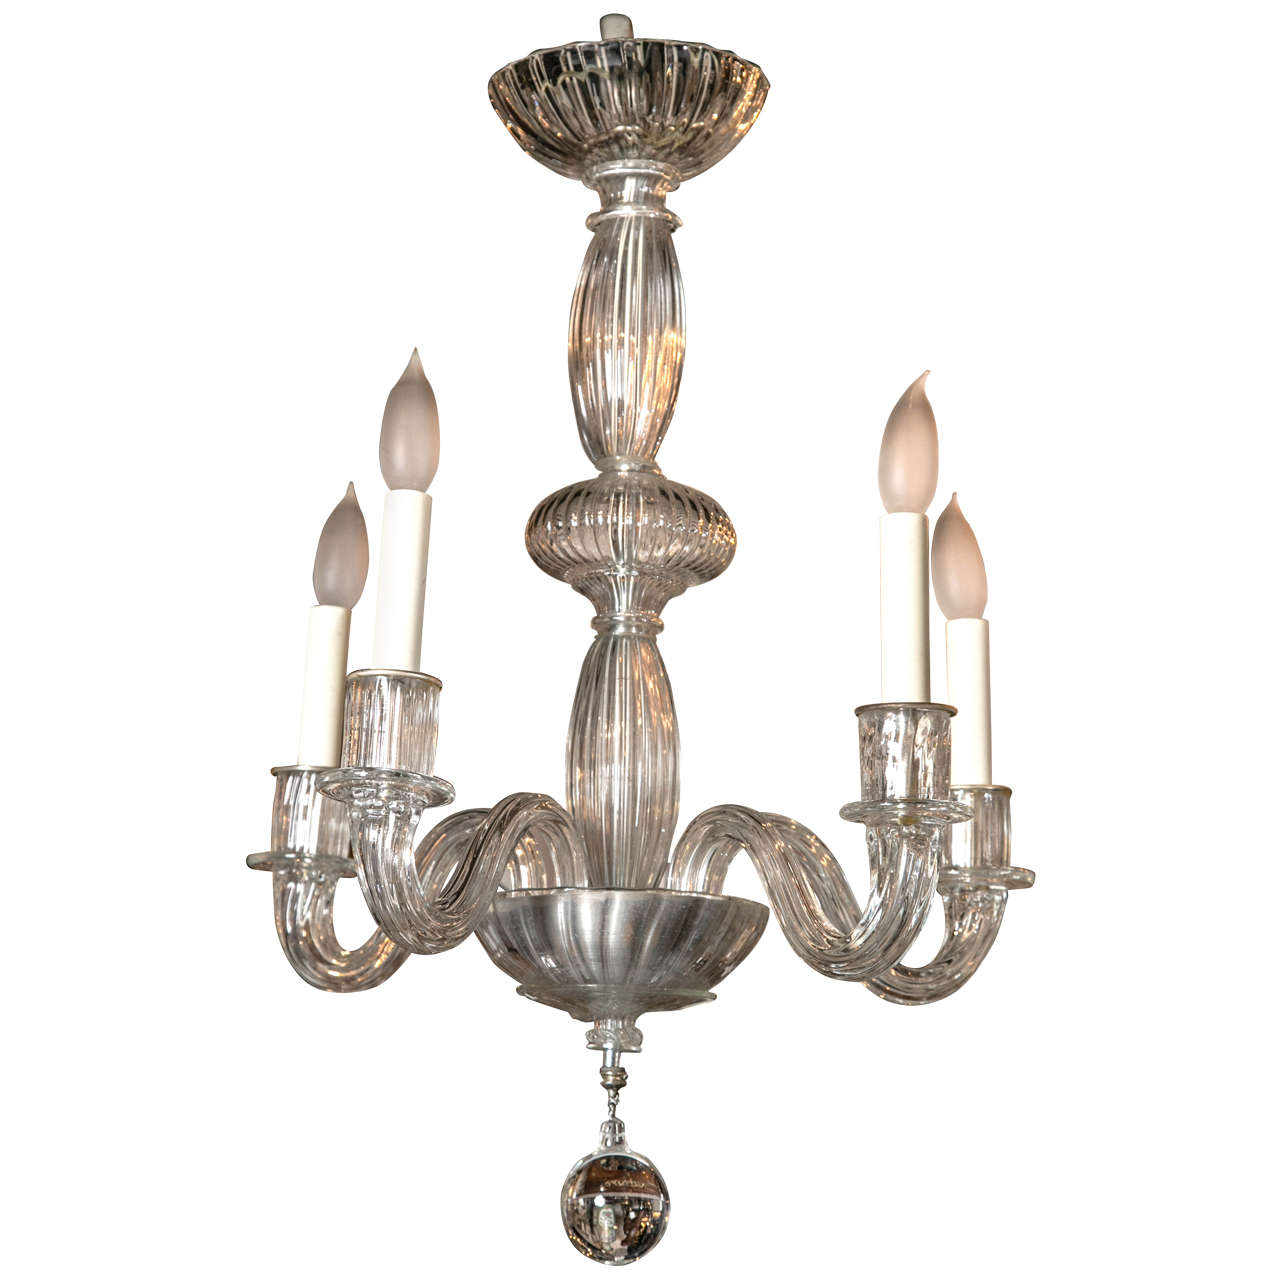 Venetian chandelier circa 1940s for sale at 1stdibs - Circa lighting chandeliers ...